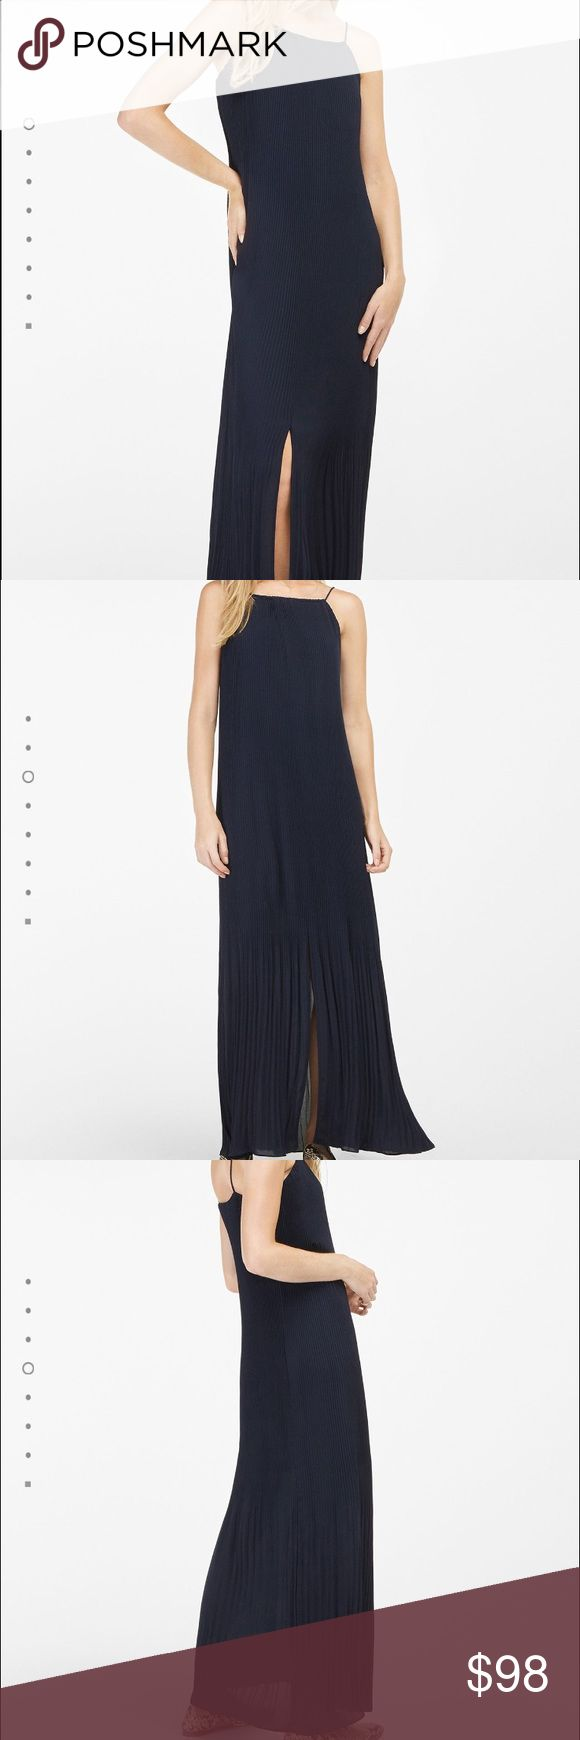 WITH GIFT😍Massimo Dutti navy blue long dress Brand new with tags, super chick , perfect for summer nights🌟⭐️ its %100 polyester, delicate fabric, hand wash only🙌🏻👌🏻 Earrings will be my gift which was $18 originally🎈 Massimo Dutti Dresses Maxi